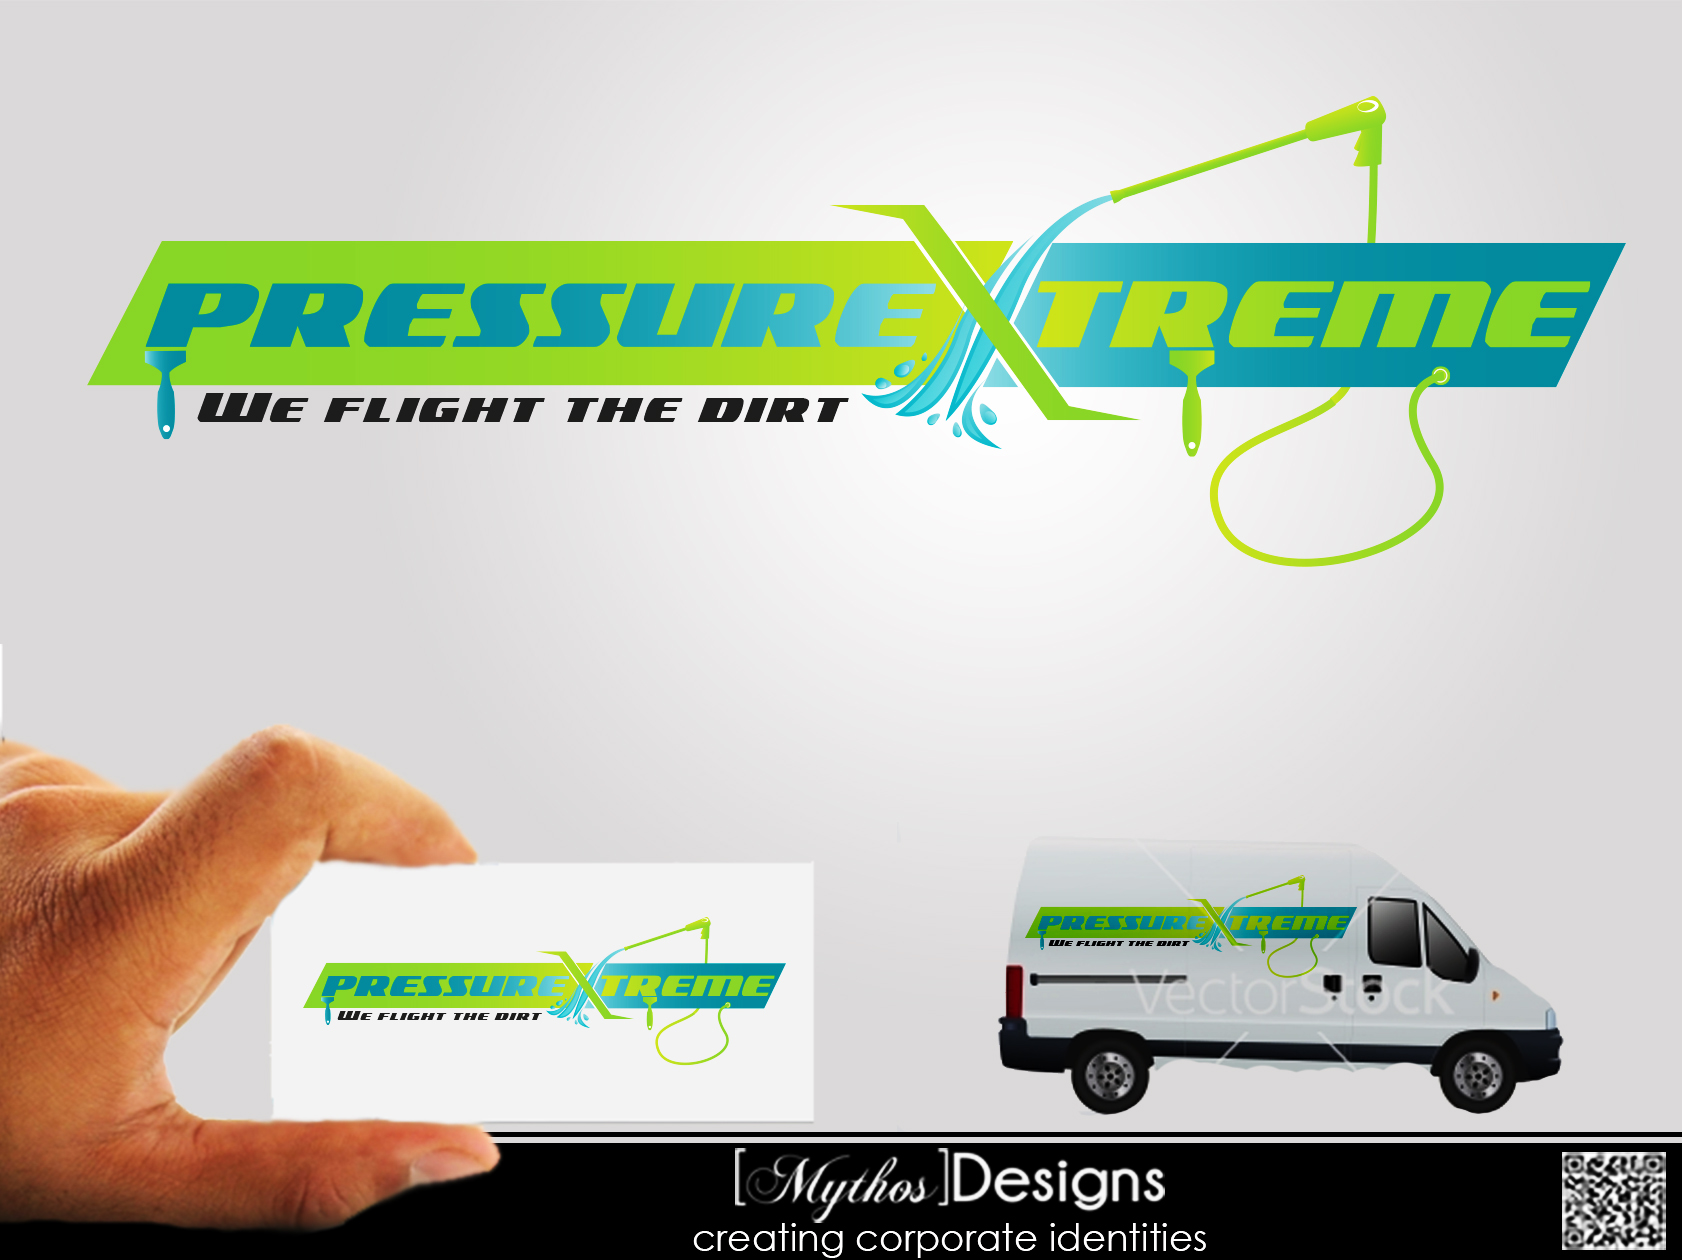 Logo Design by Mythos Designs - Entry No. 73 in the Logo Design Contest New Logo Design for PRESSUREXTREME.